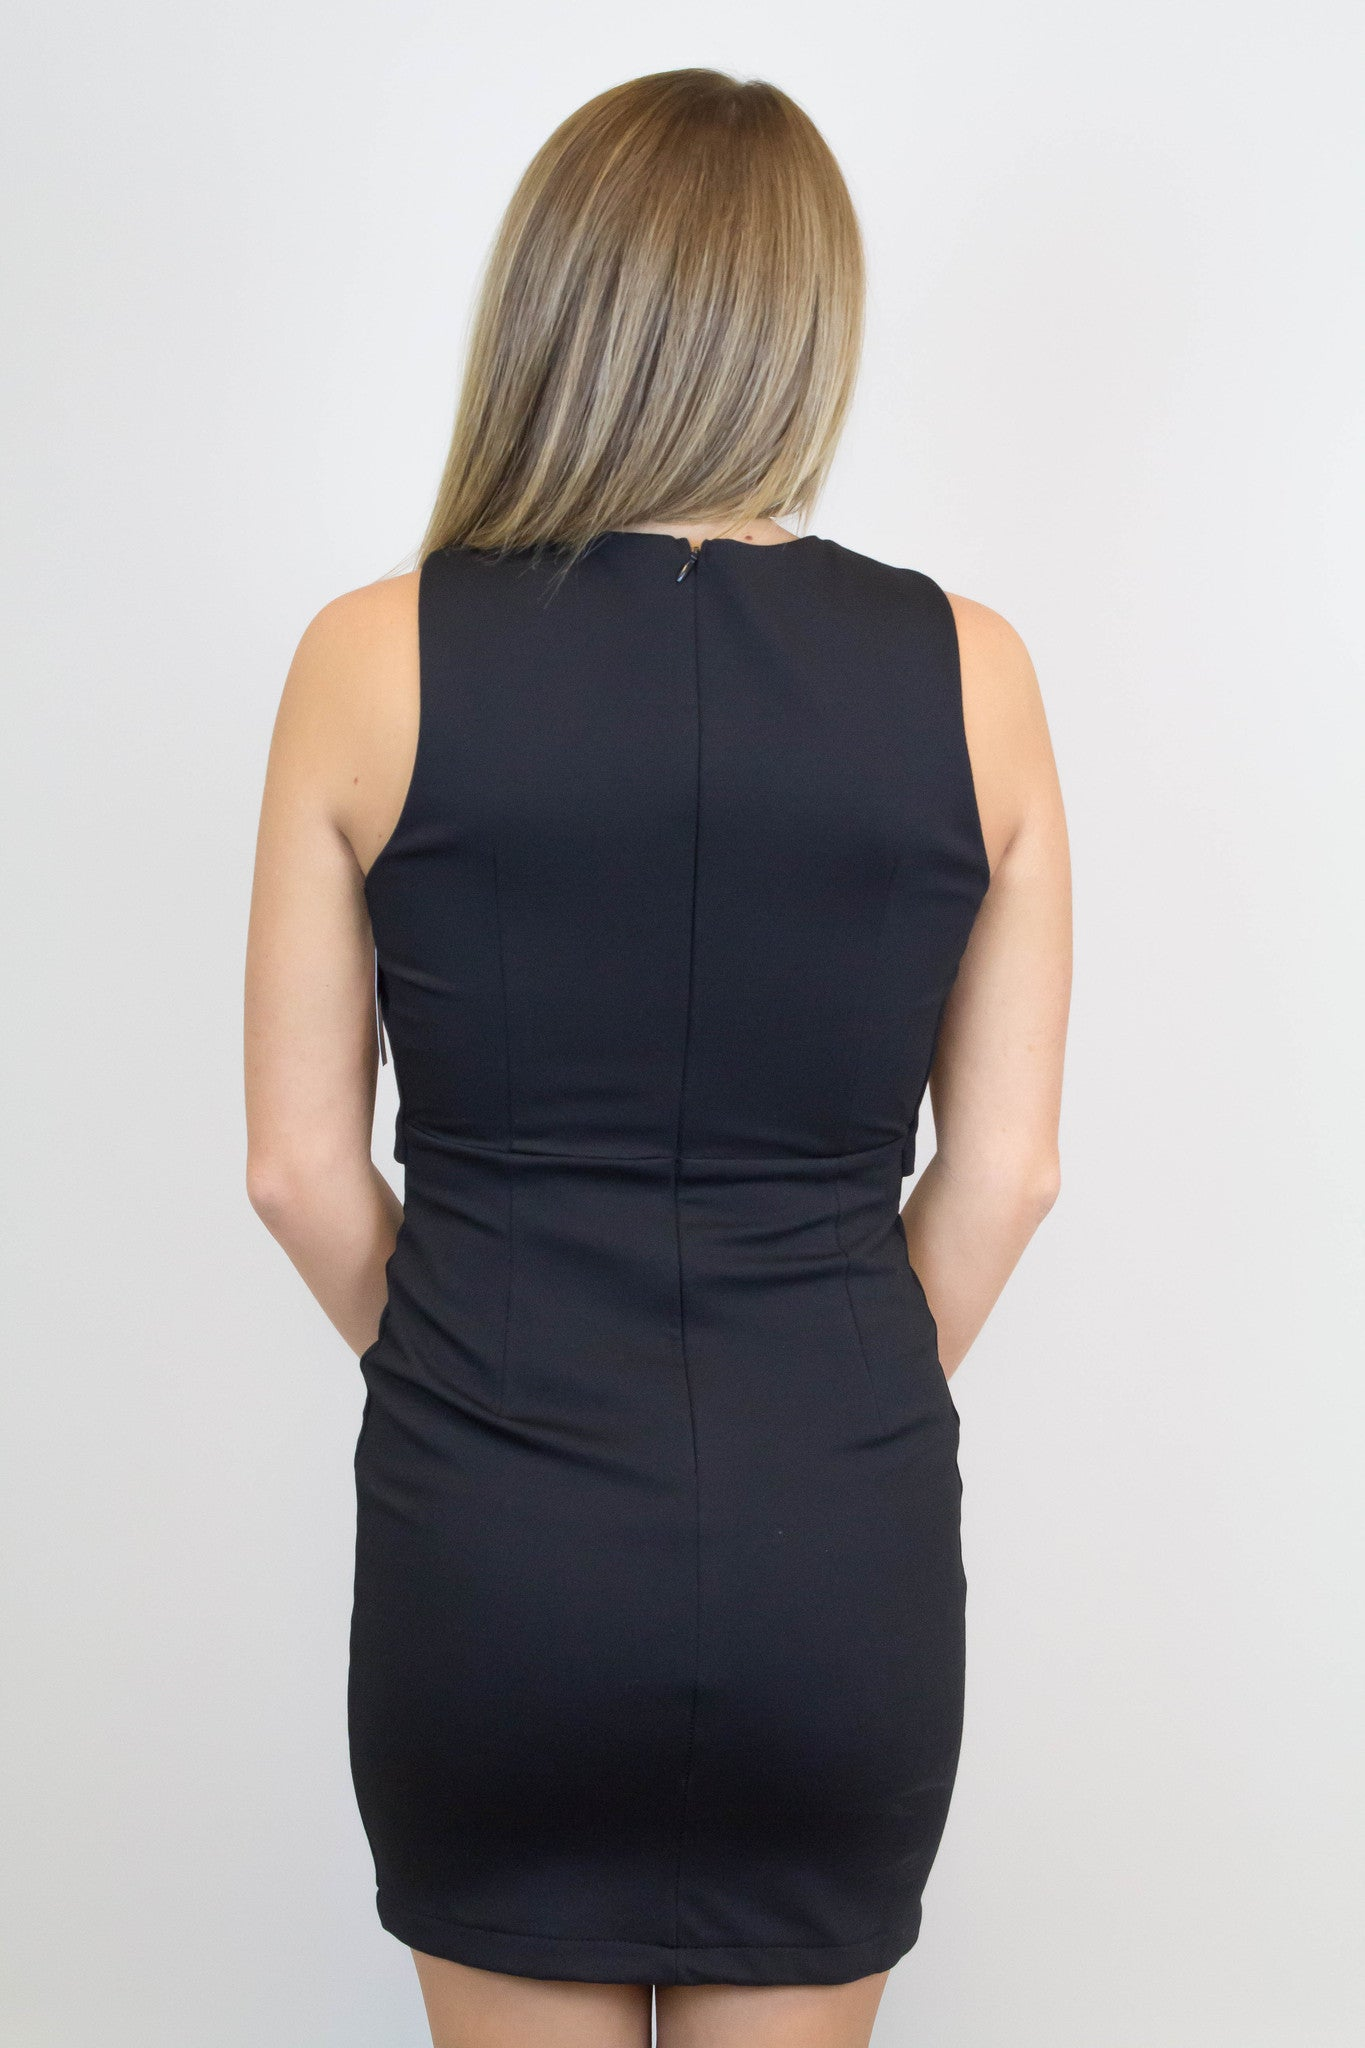 Black Criss Cross Bodycon Dress